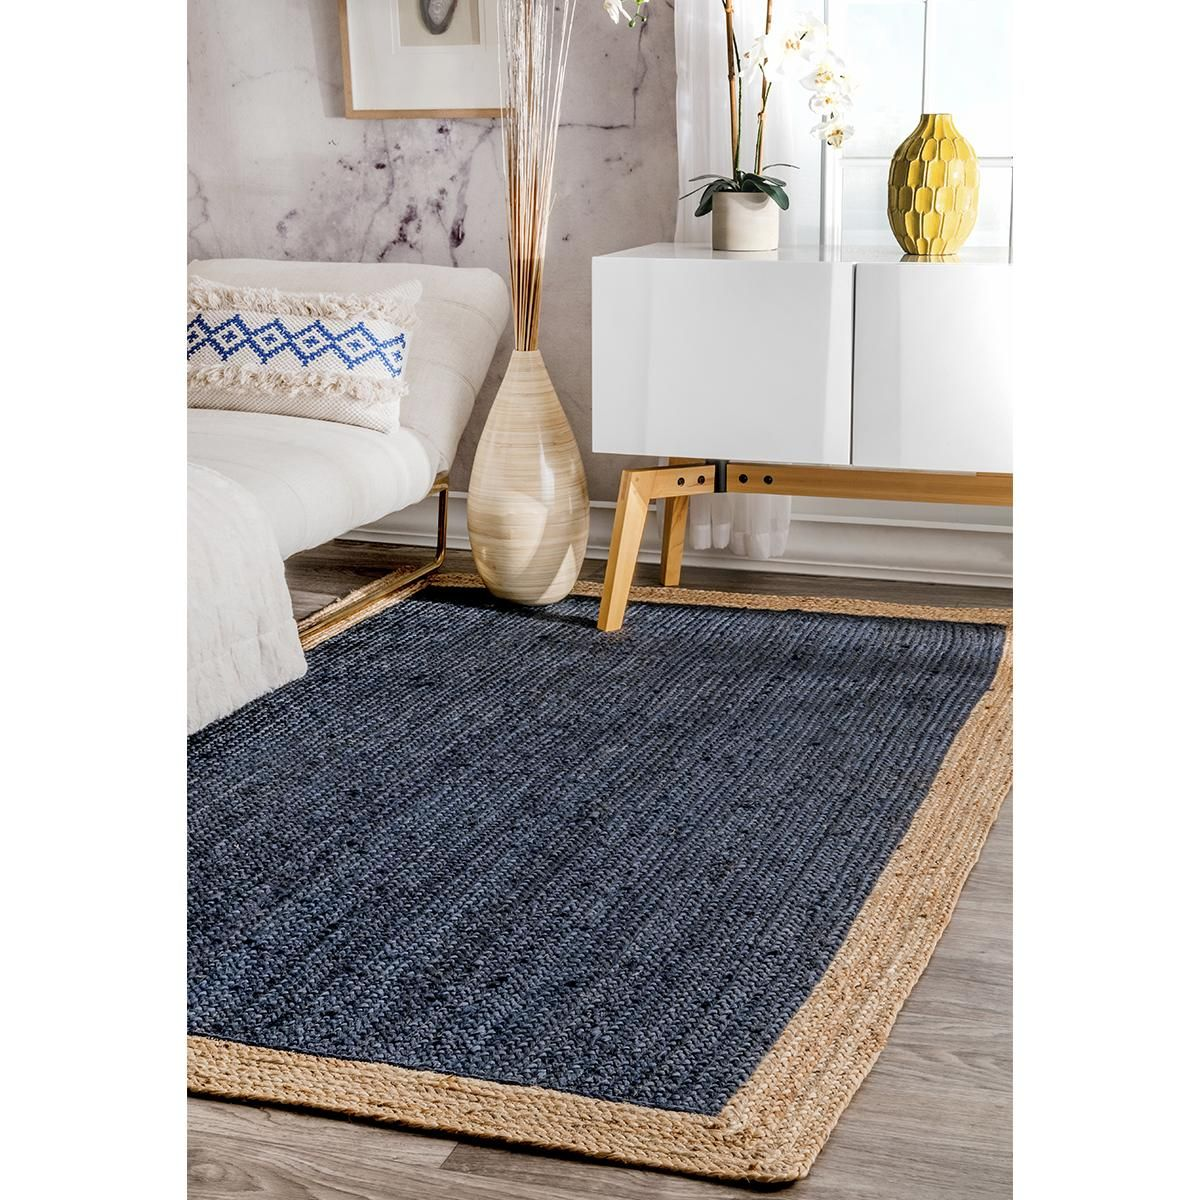 Nfm Small Rug Rugs Simple Borders Nuloom